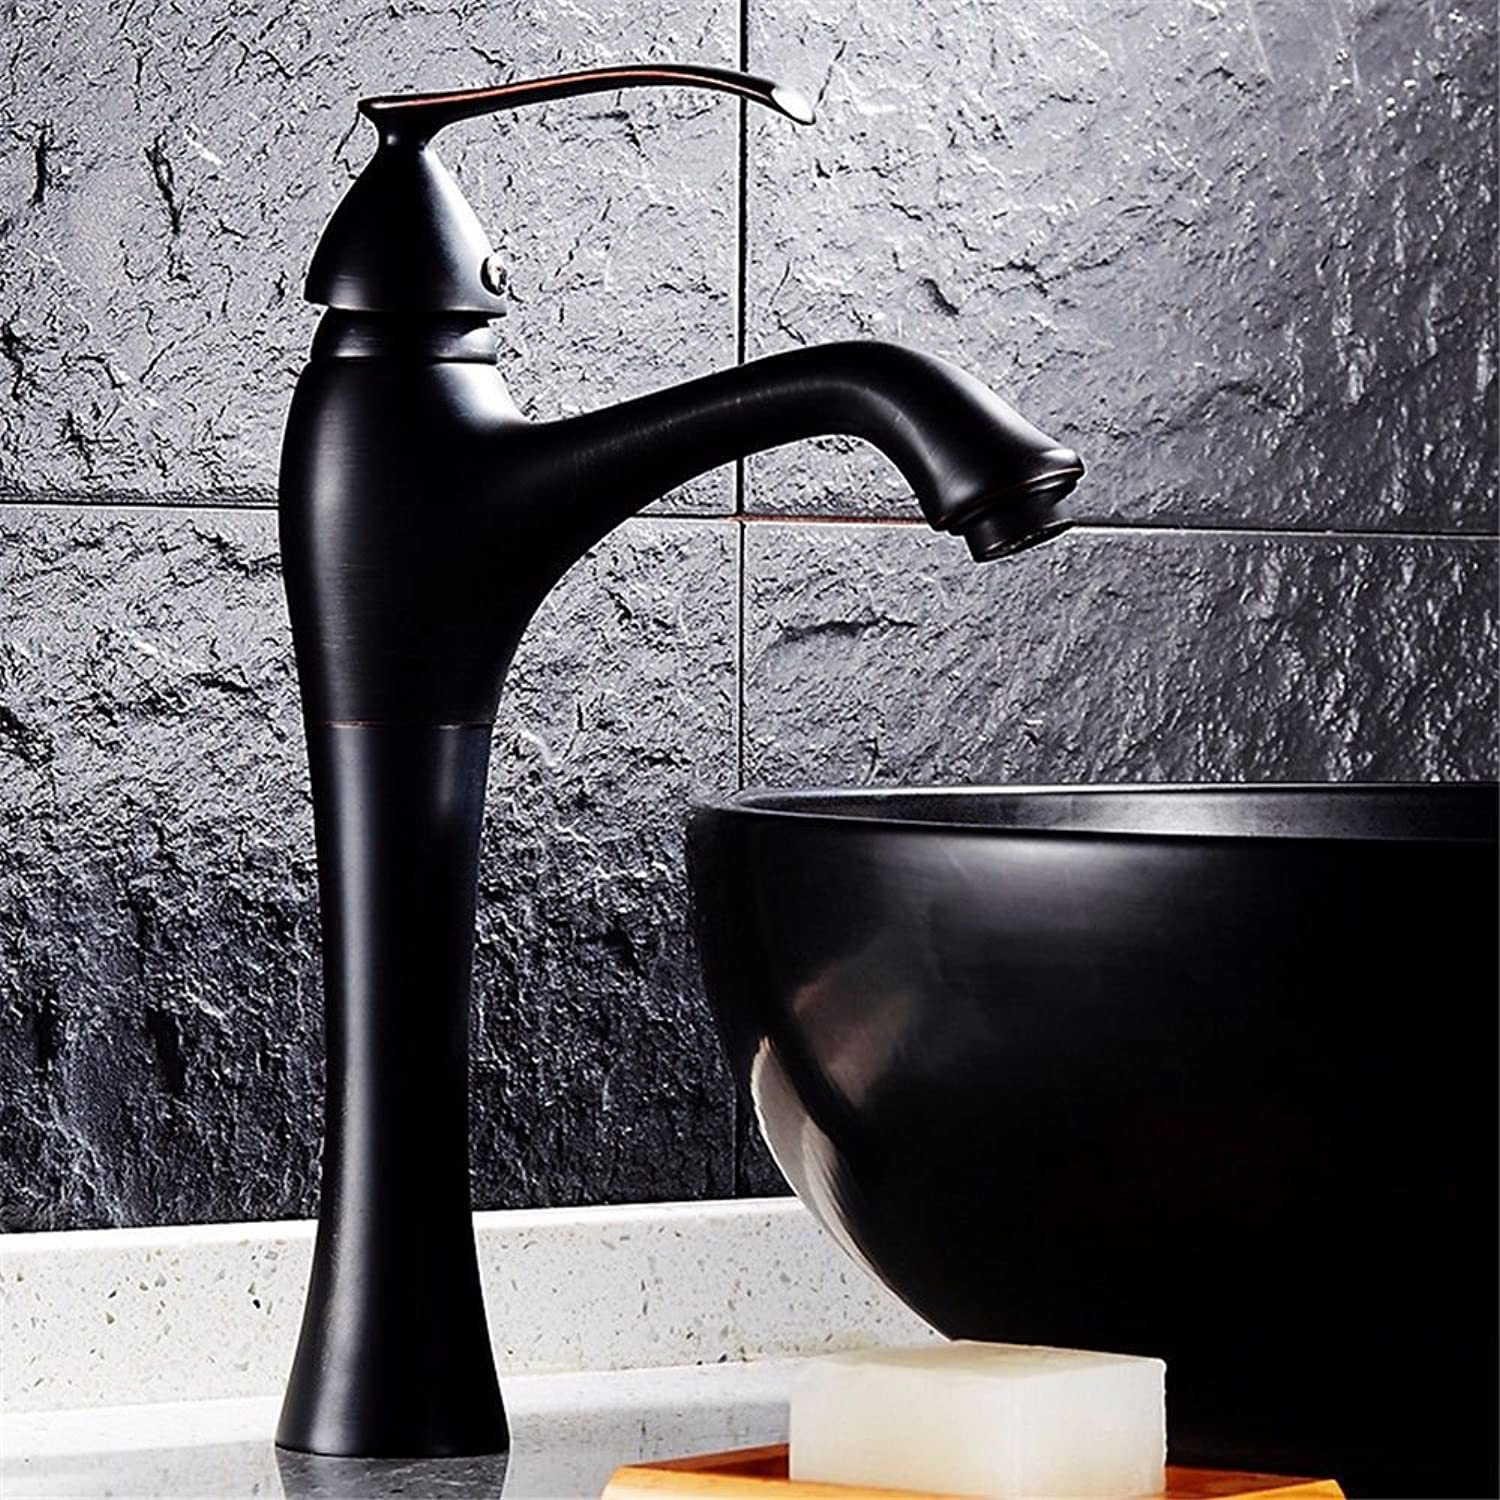 Lalaky Taps Faucet Kitchen Mixer Sink Waterfall Bathroom Mixer Basin Mixer Tap for Kitchen Bathroom and Washroom Antique Copper Black Hot and Cold Vintage